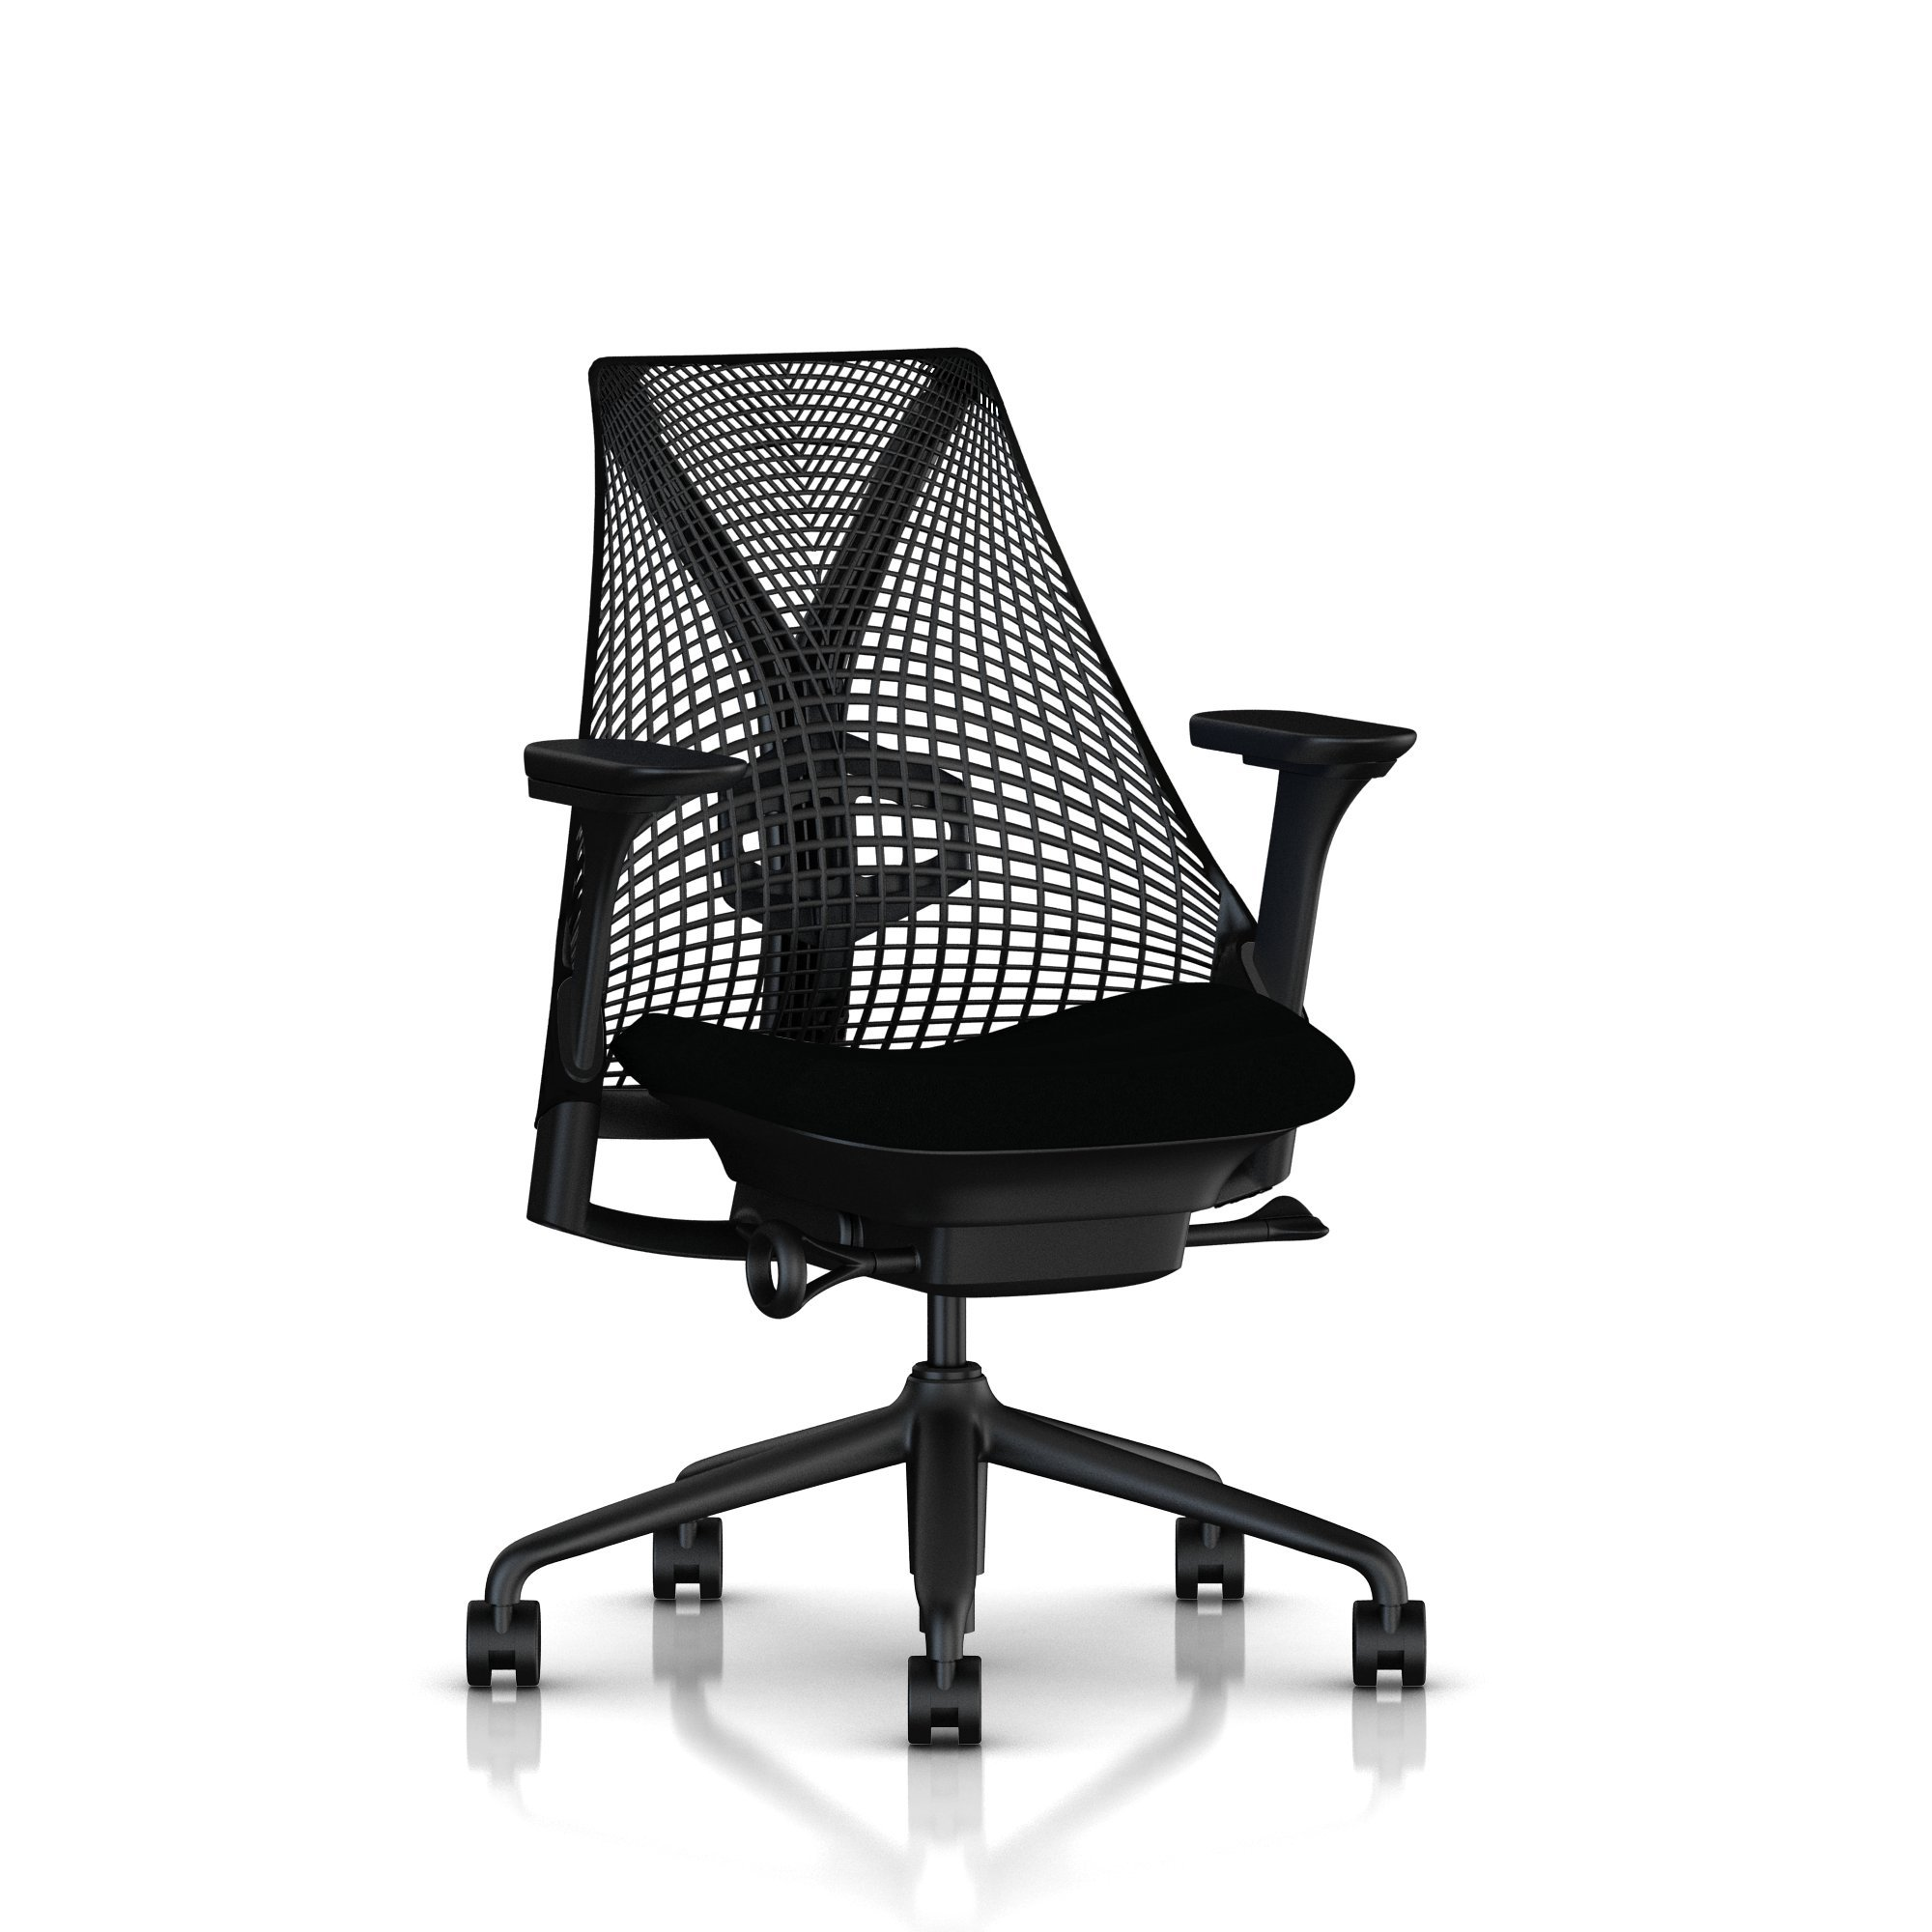 Herman Miller Sayl Ergonomic Office Chair with Tilt Limiter and Carpet Casters | Adjustable Seat Angle/Depth, Lumbar Support, and Arms | Black Frame with Licorice Crepe Seat